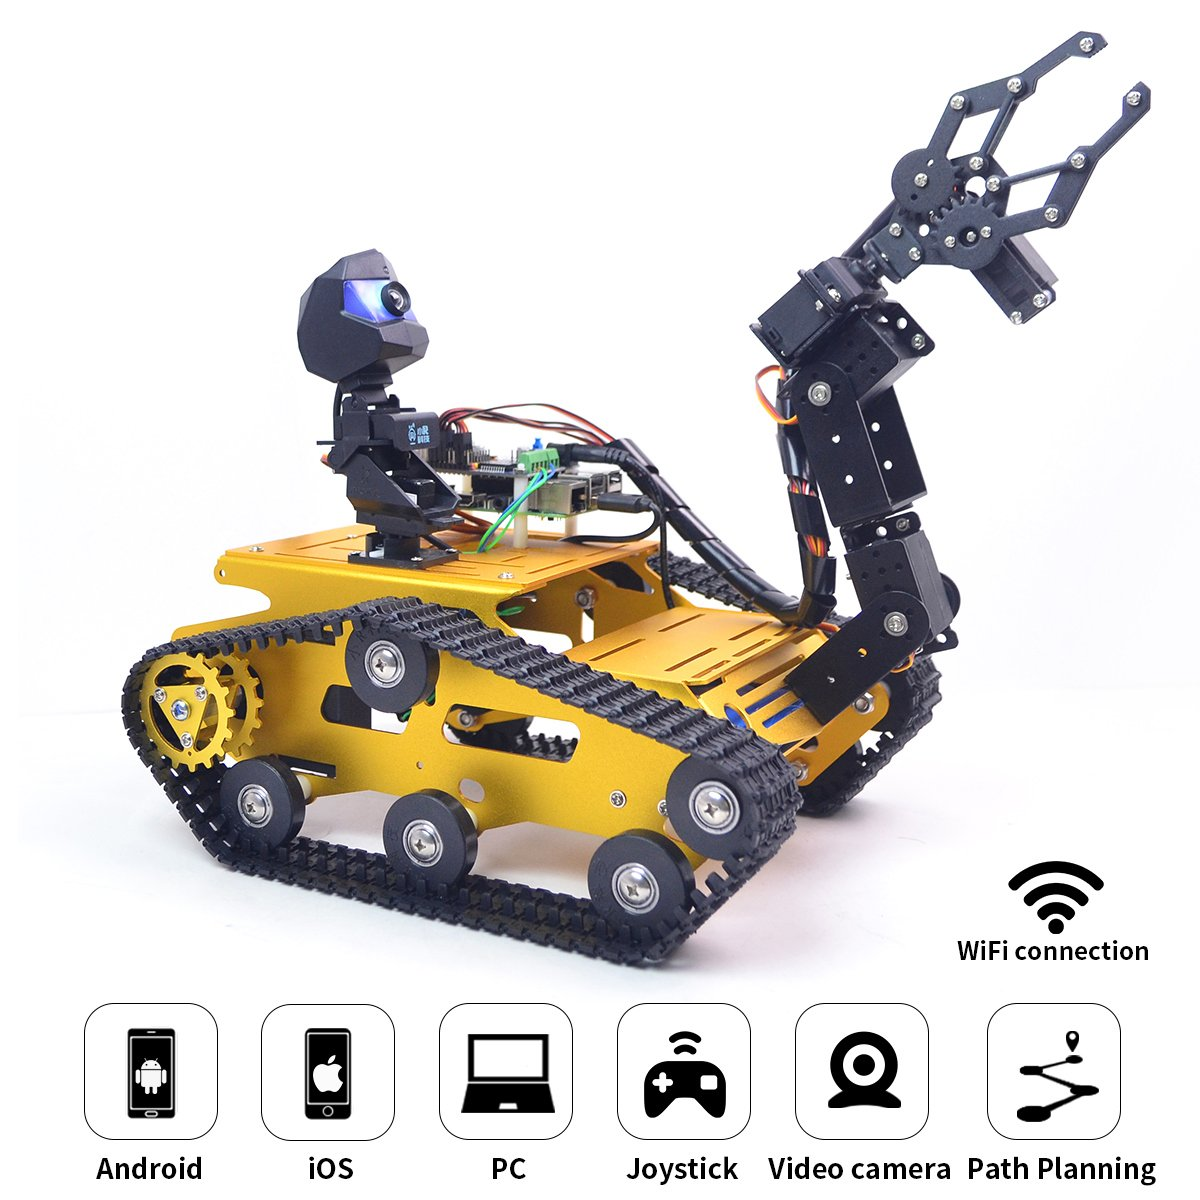 Upgraded WiFi Smart Robot Car Kit for Raspberry Pi, Gold Robot Tank  Chassis, 2DOF Hd Camera, 4DOF Robot Arm, Remote Control Vehicle Toy  Controlled by